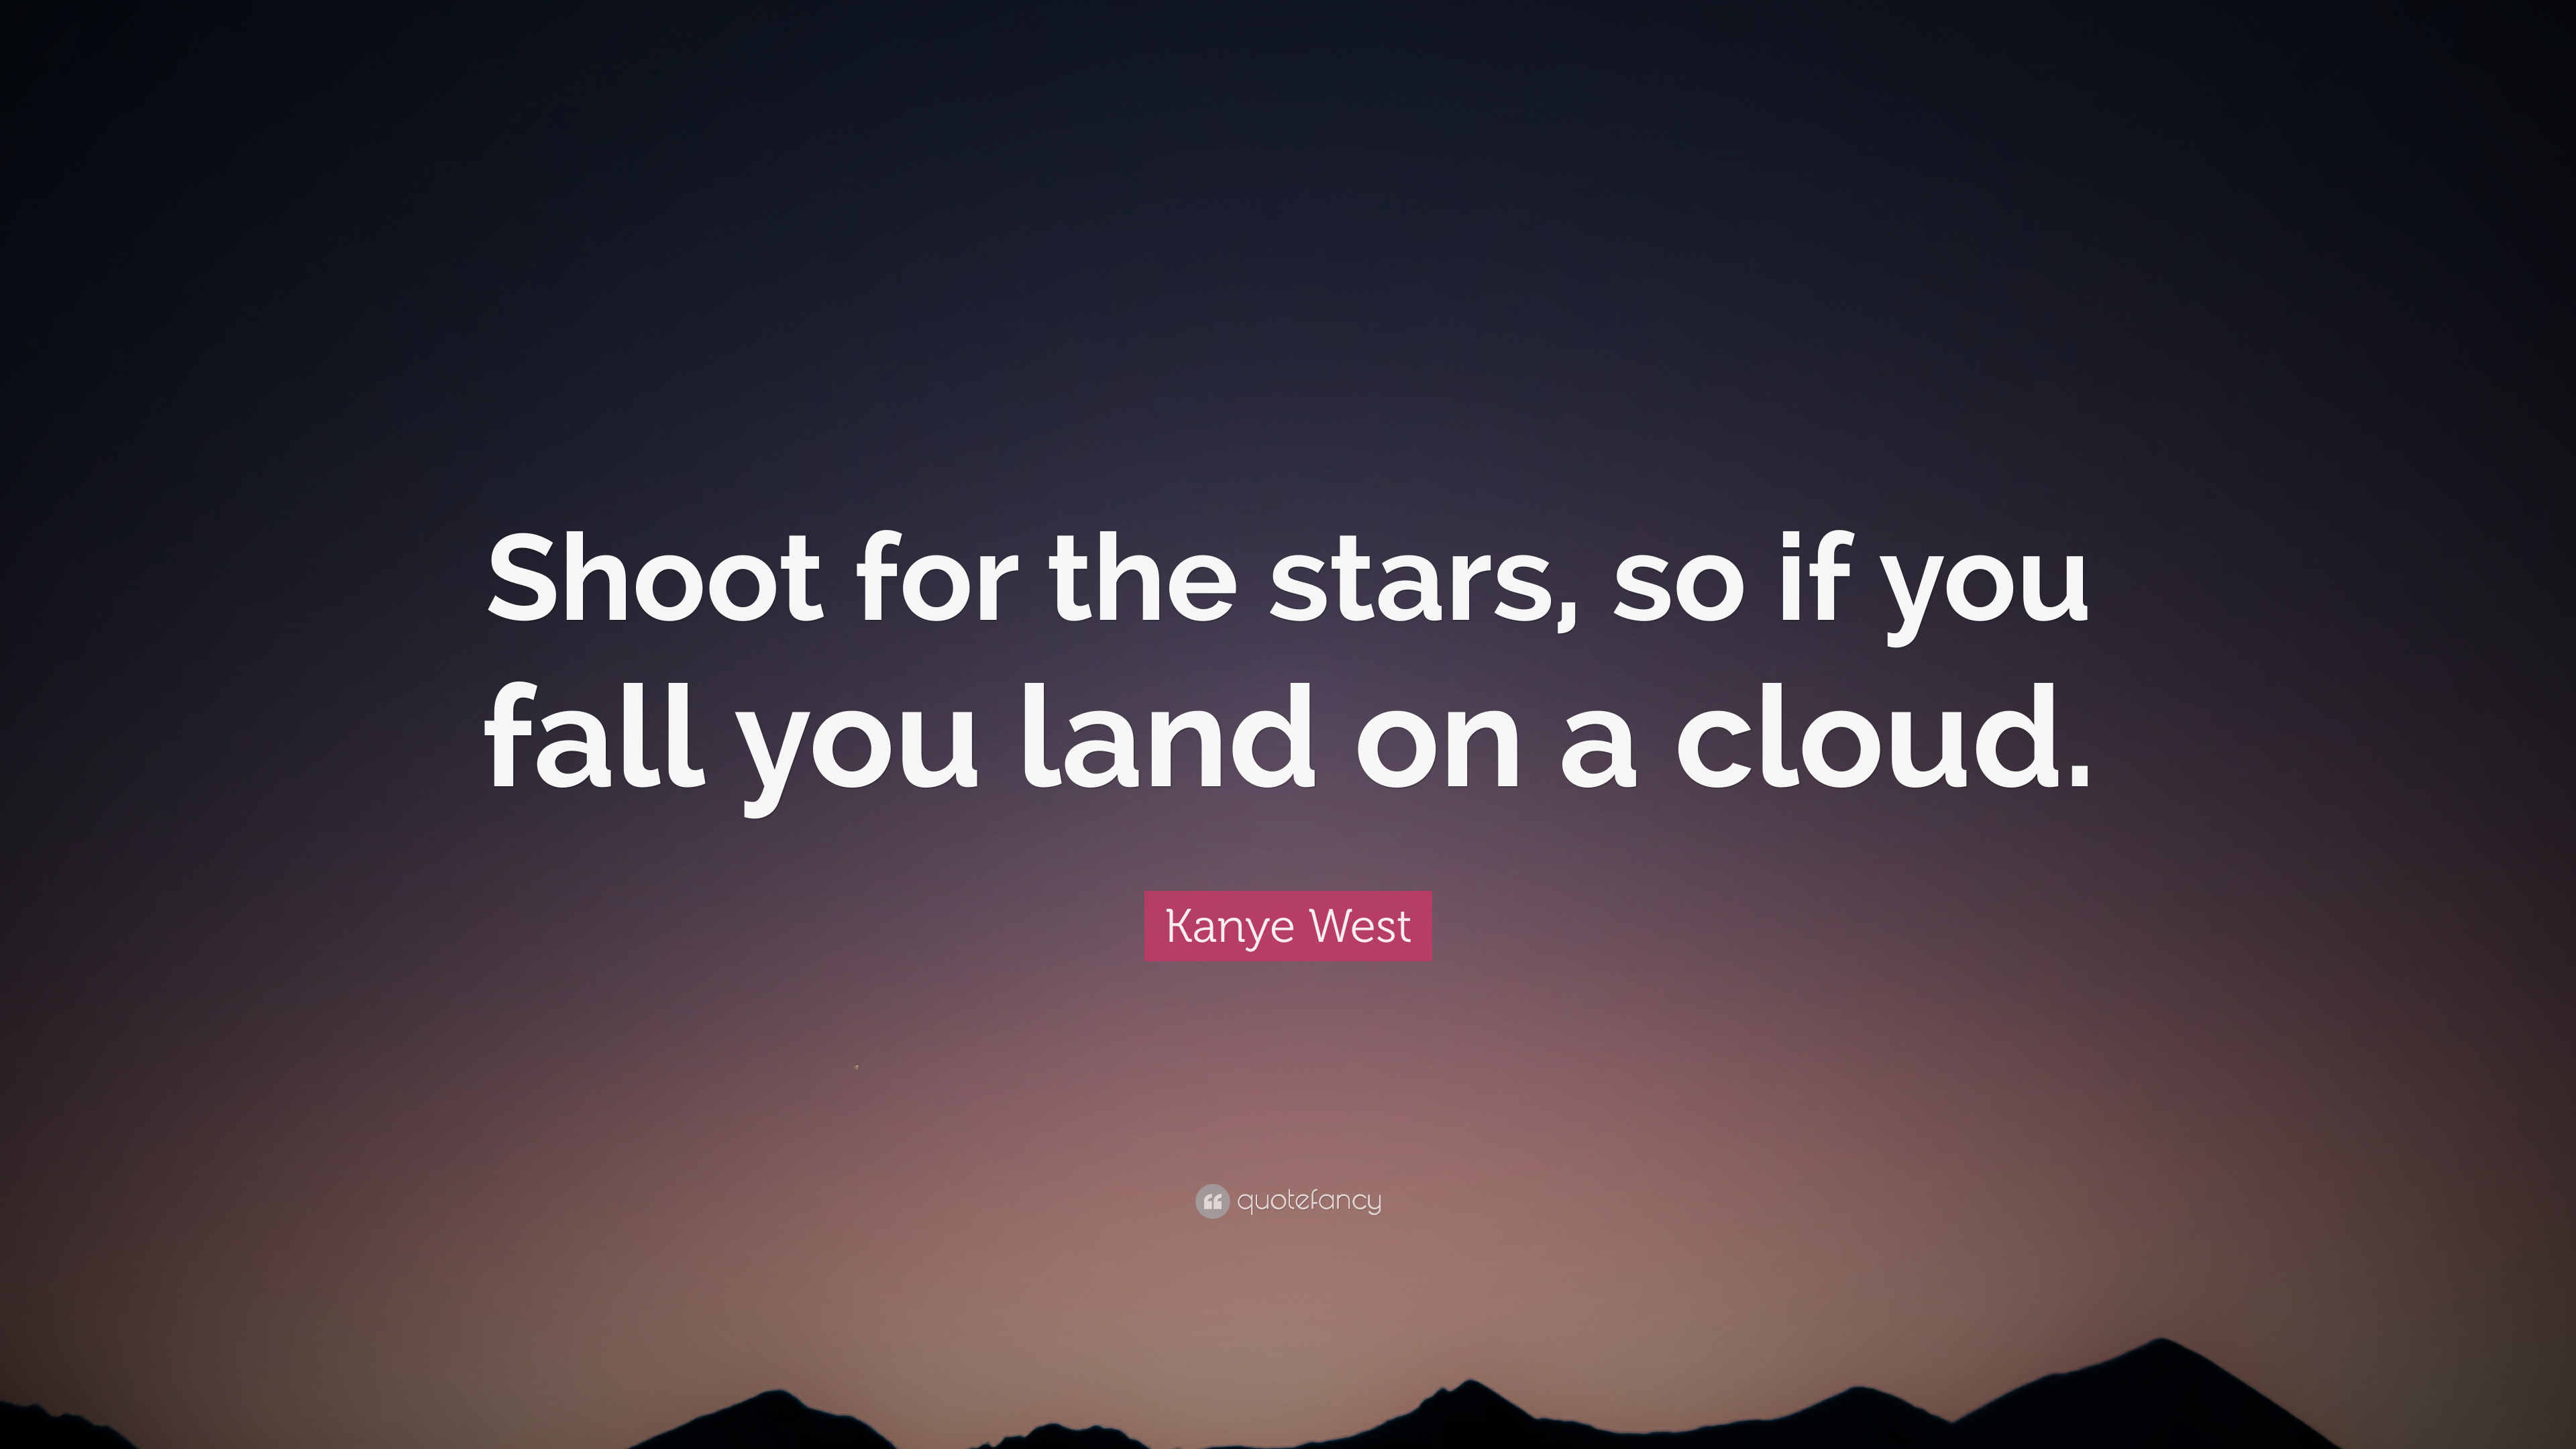 Kanye West Quote Shoot For The Stars So If You Fall You Land On A